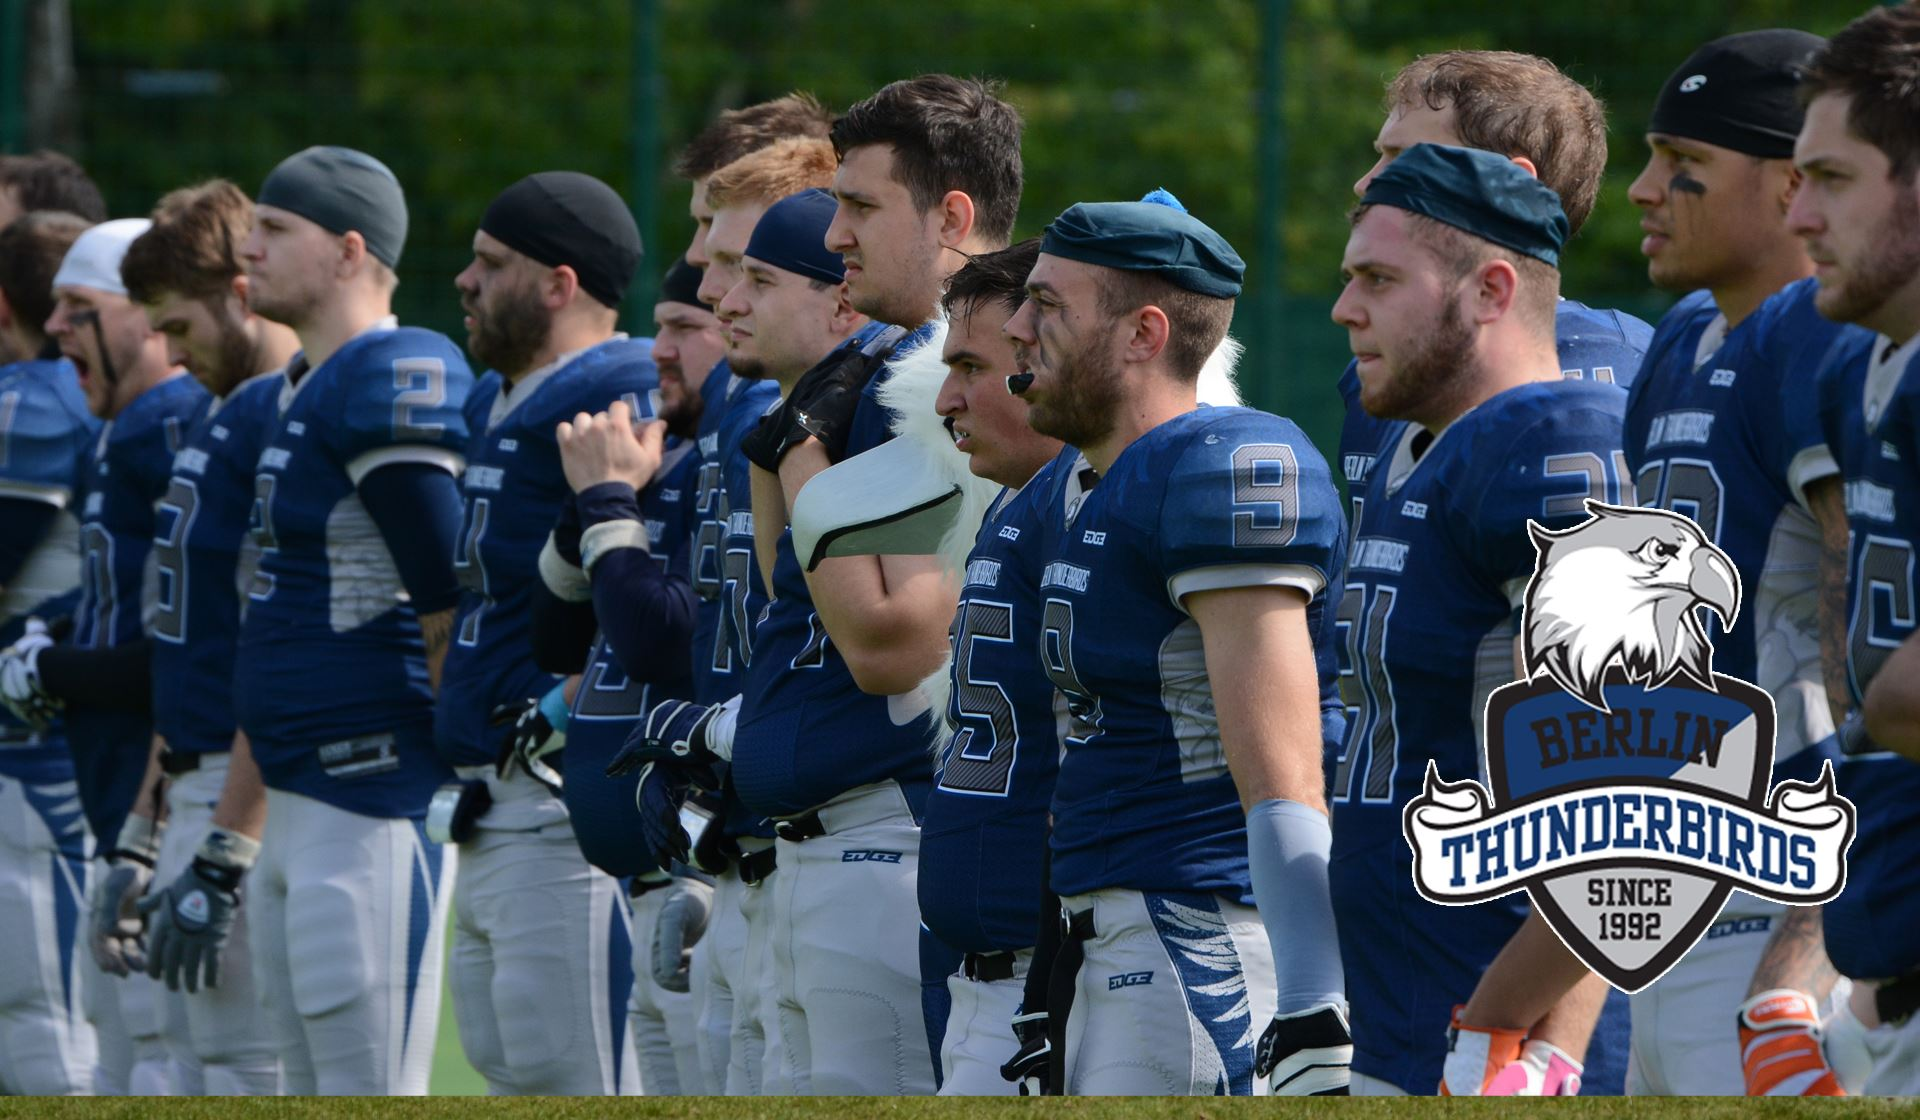 Berlin Thunderbirds